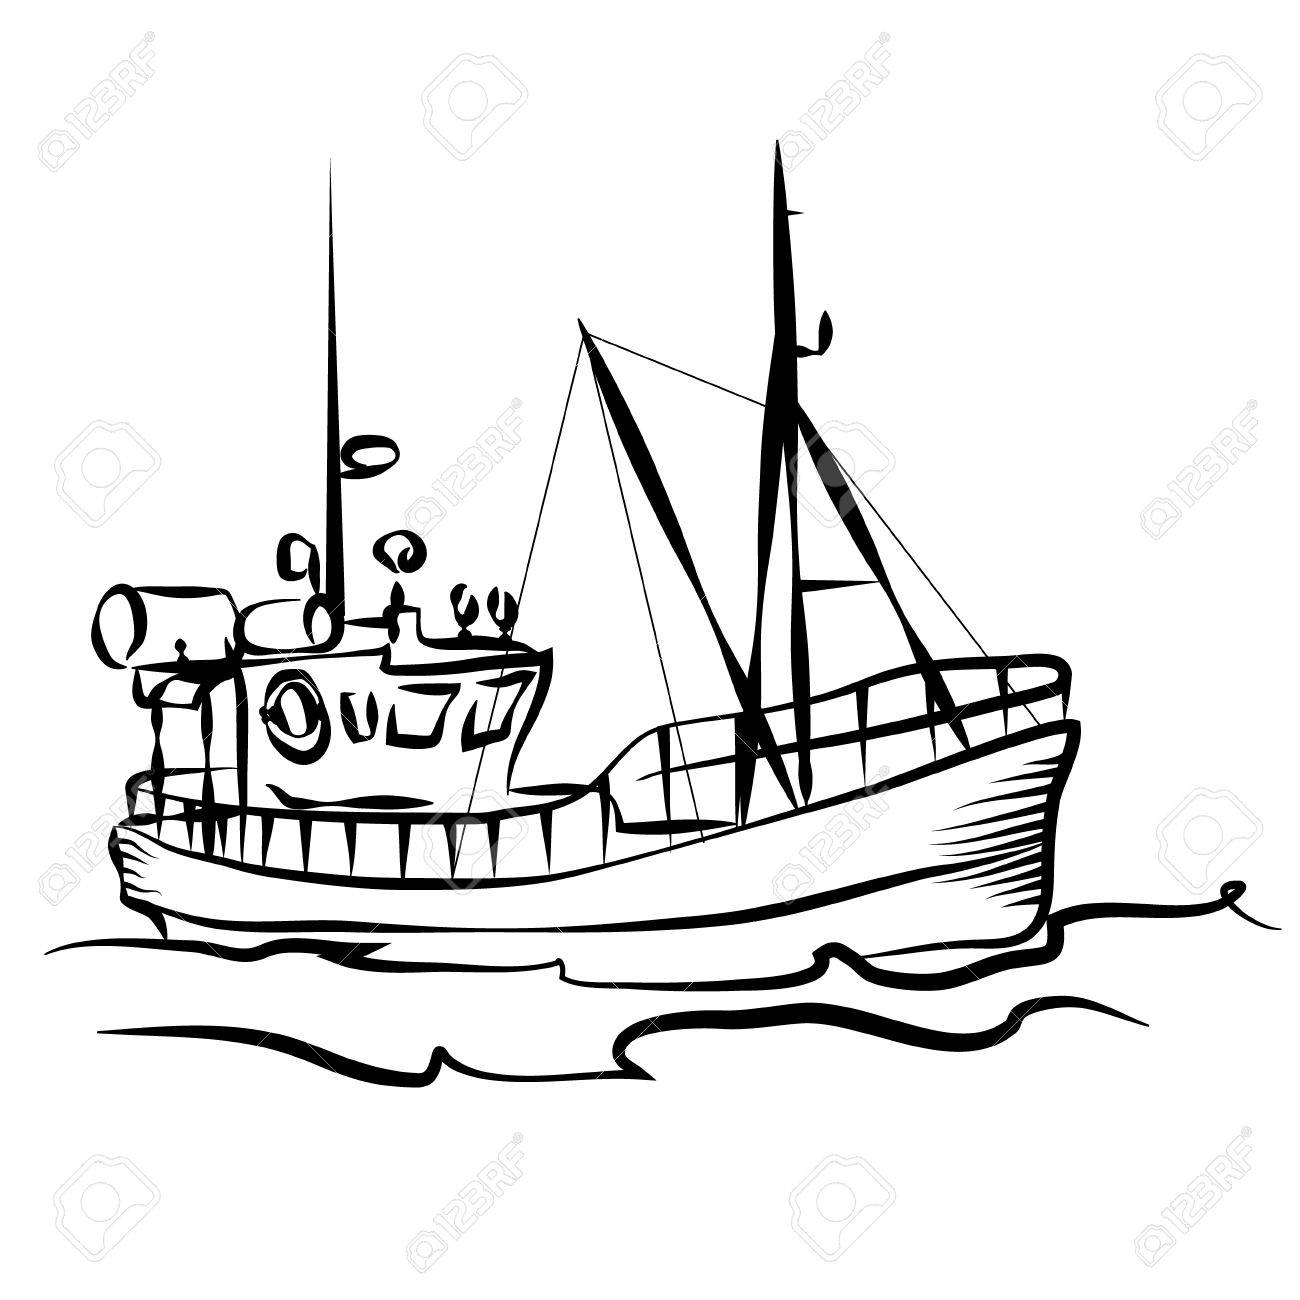 Fishing boat business silhouette graphic.